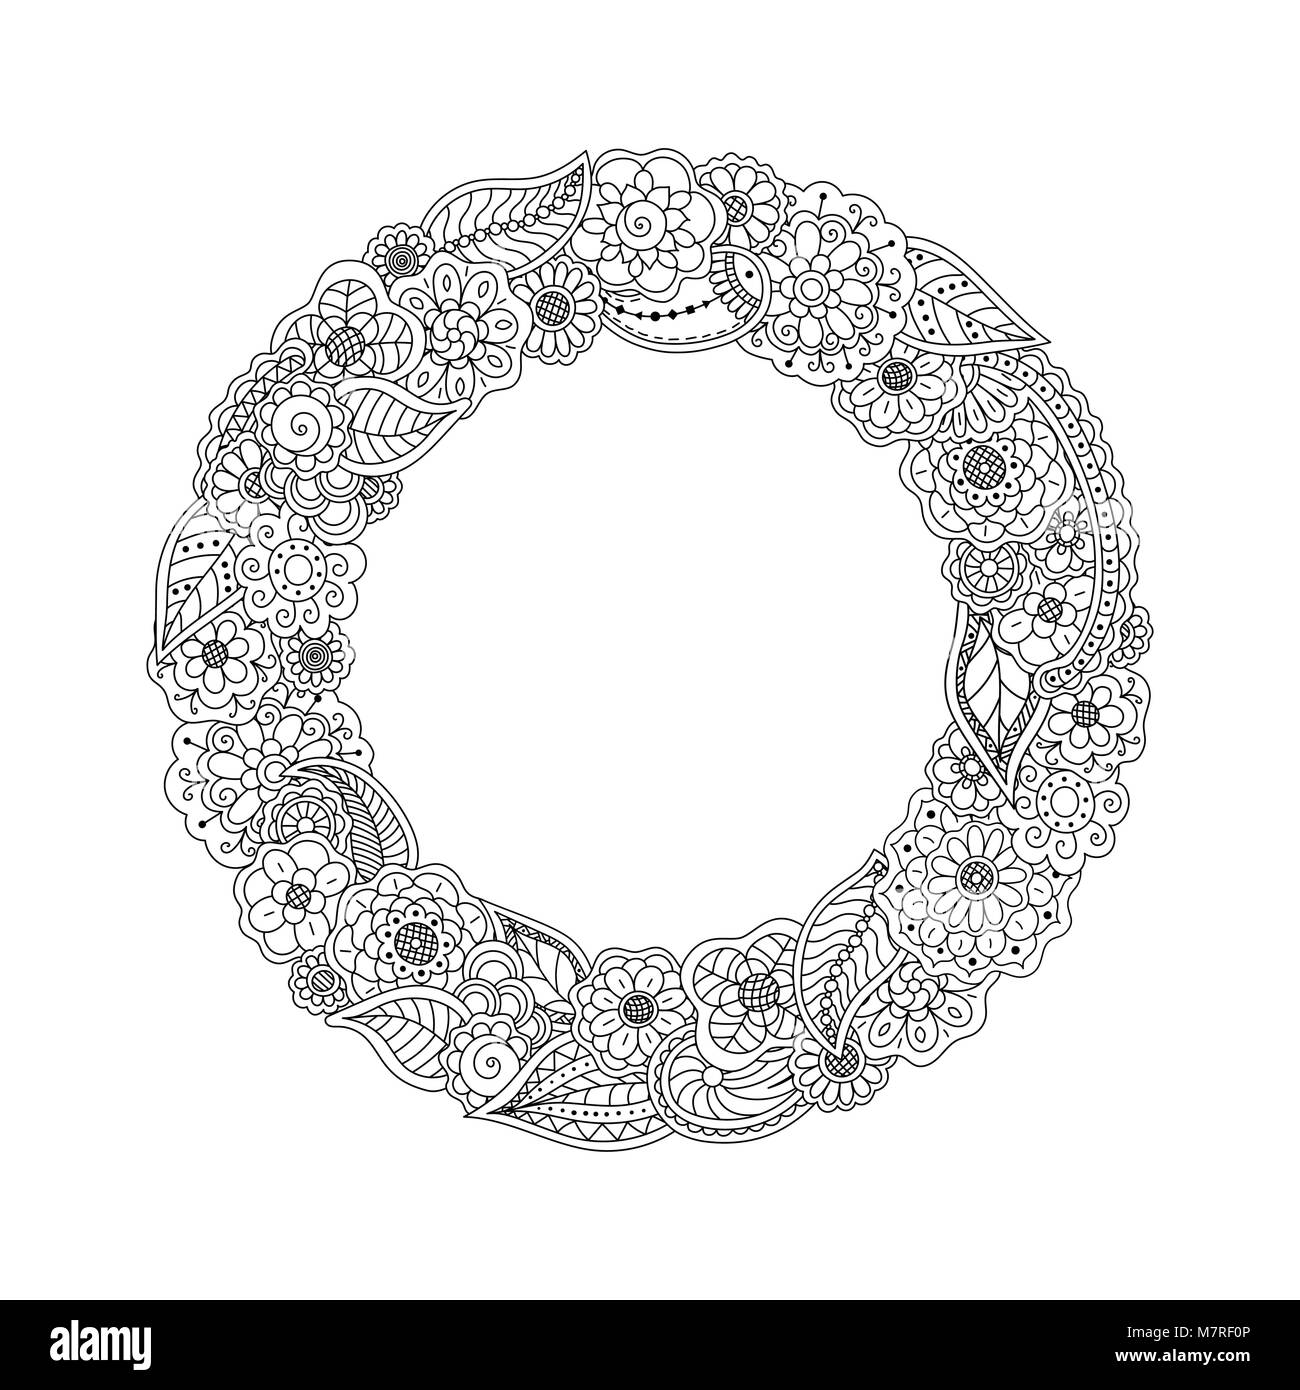 Vector Round Circle Frame Of Doodle Flowers Black And White Floral Wreath Coloring